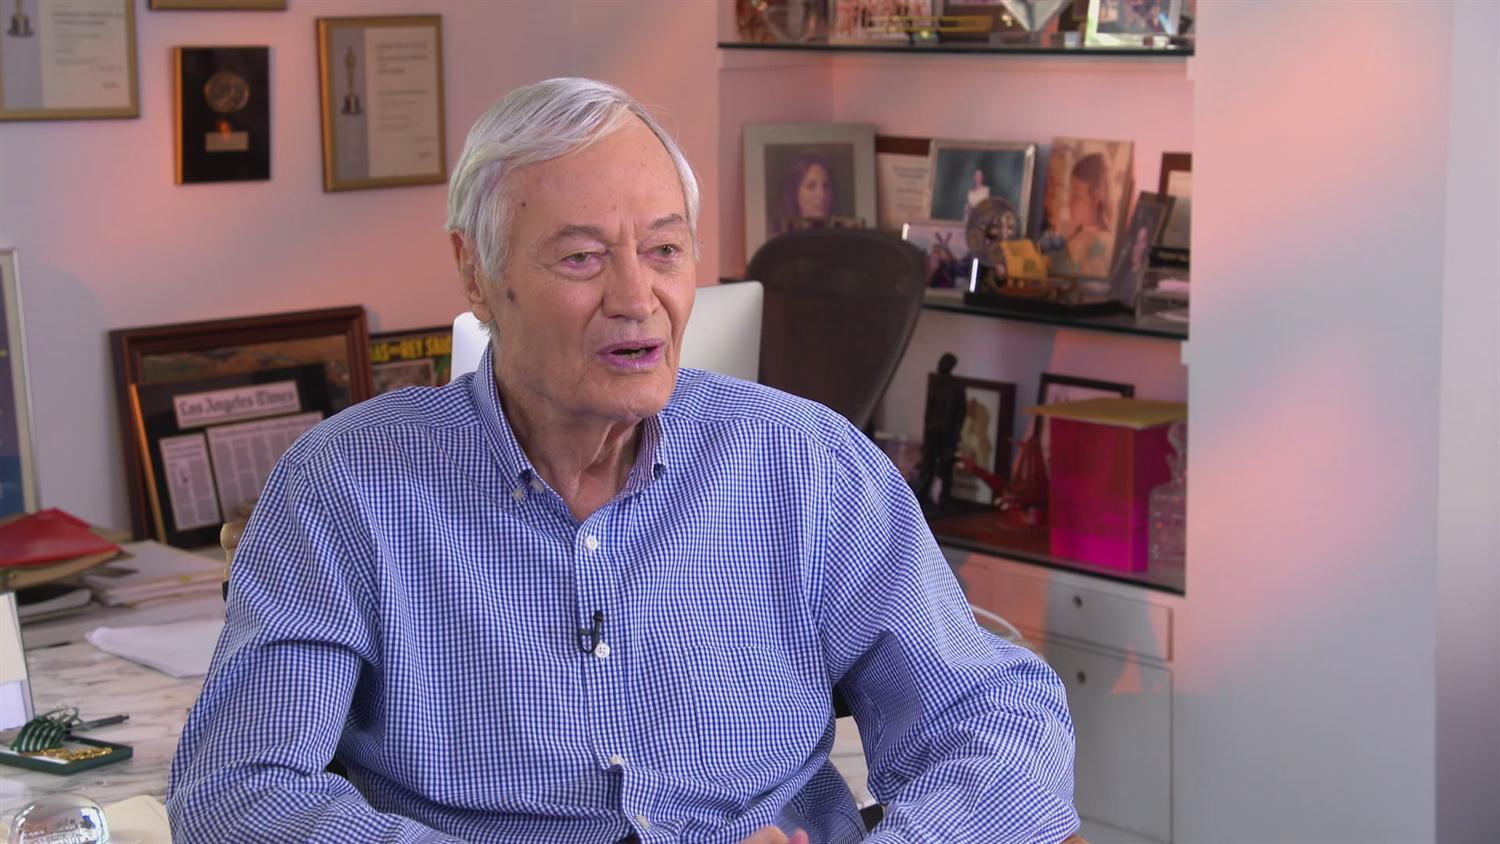 Roger Corman On What He Thinks Of The Term Schlock